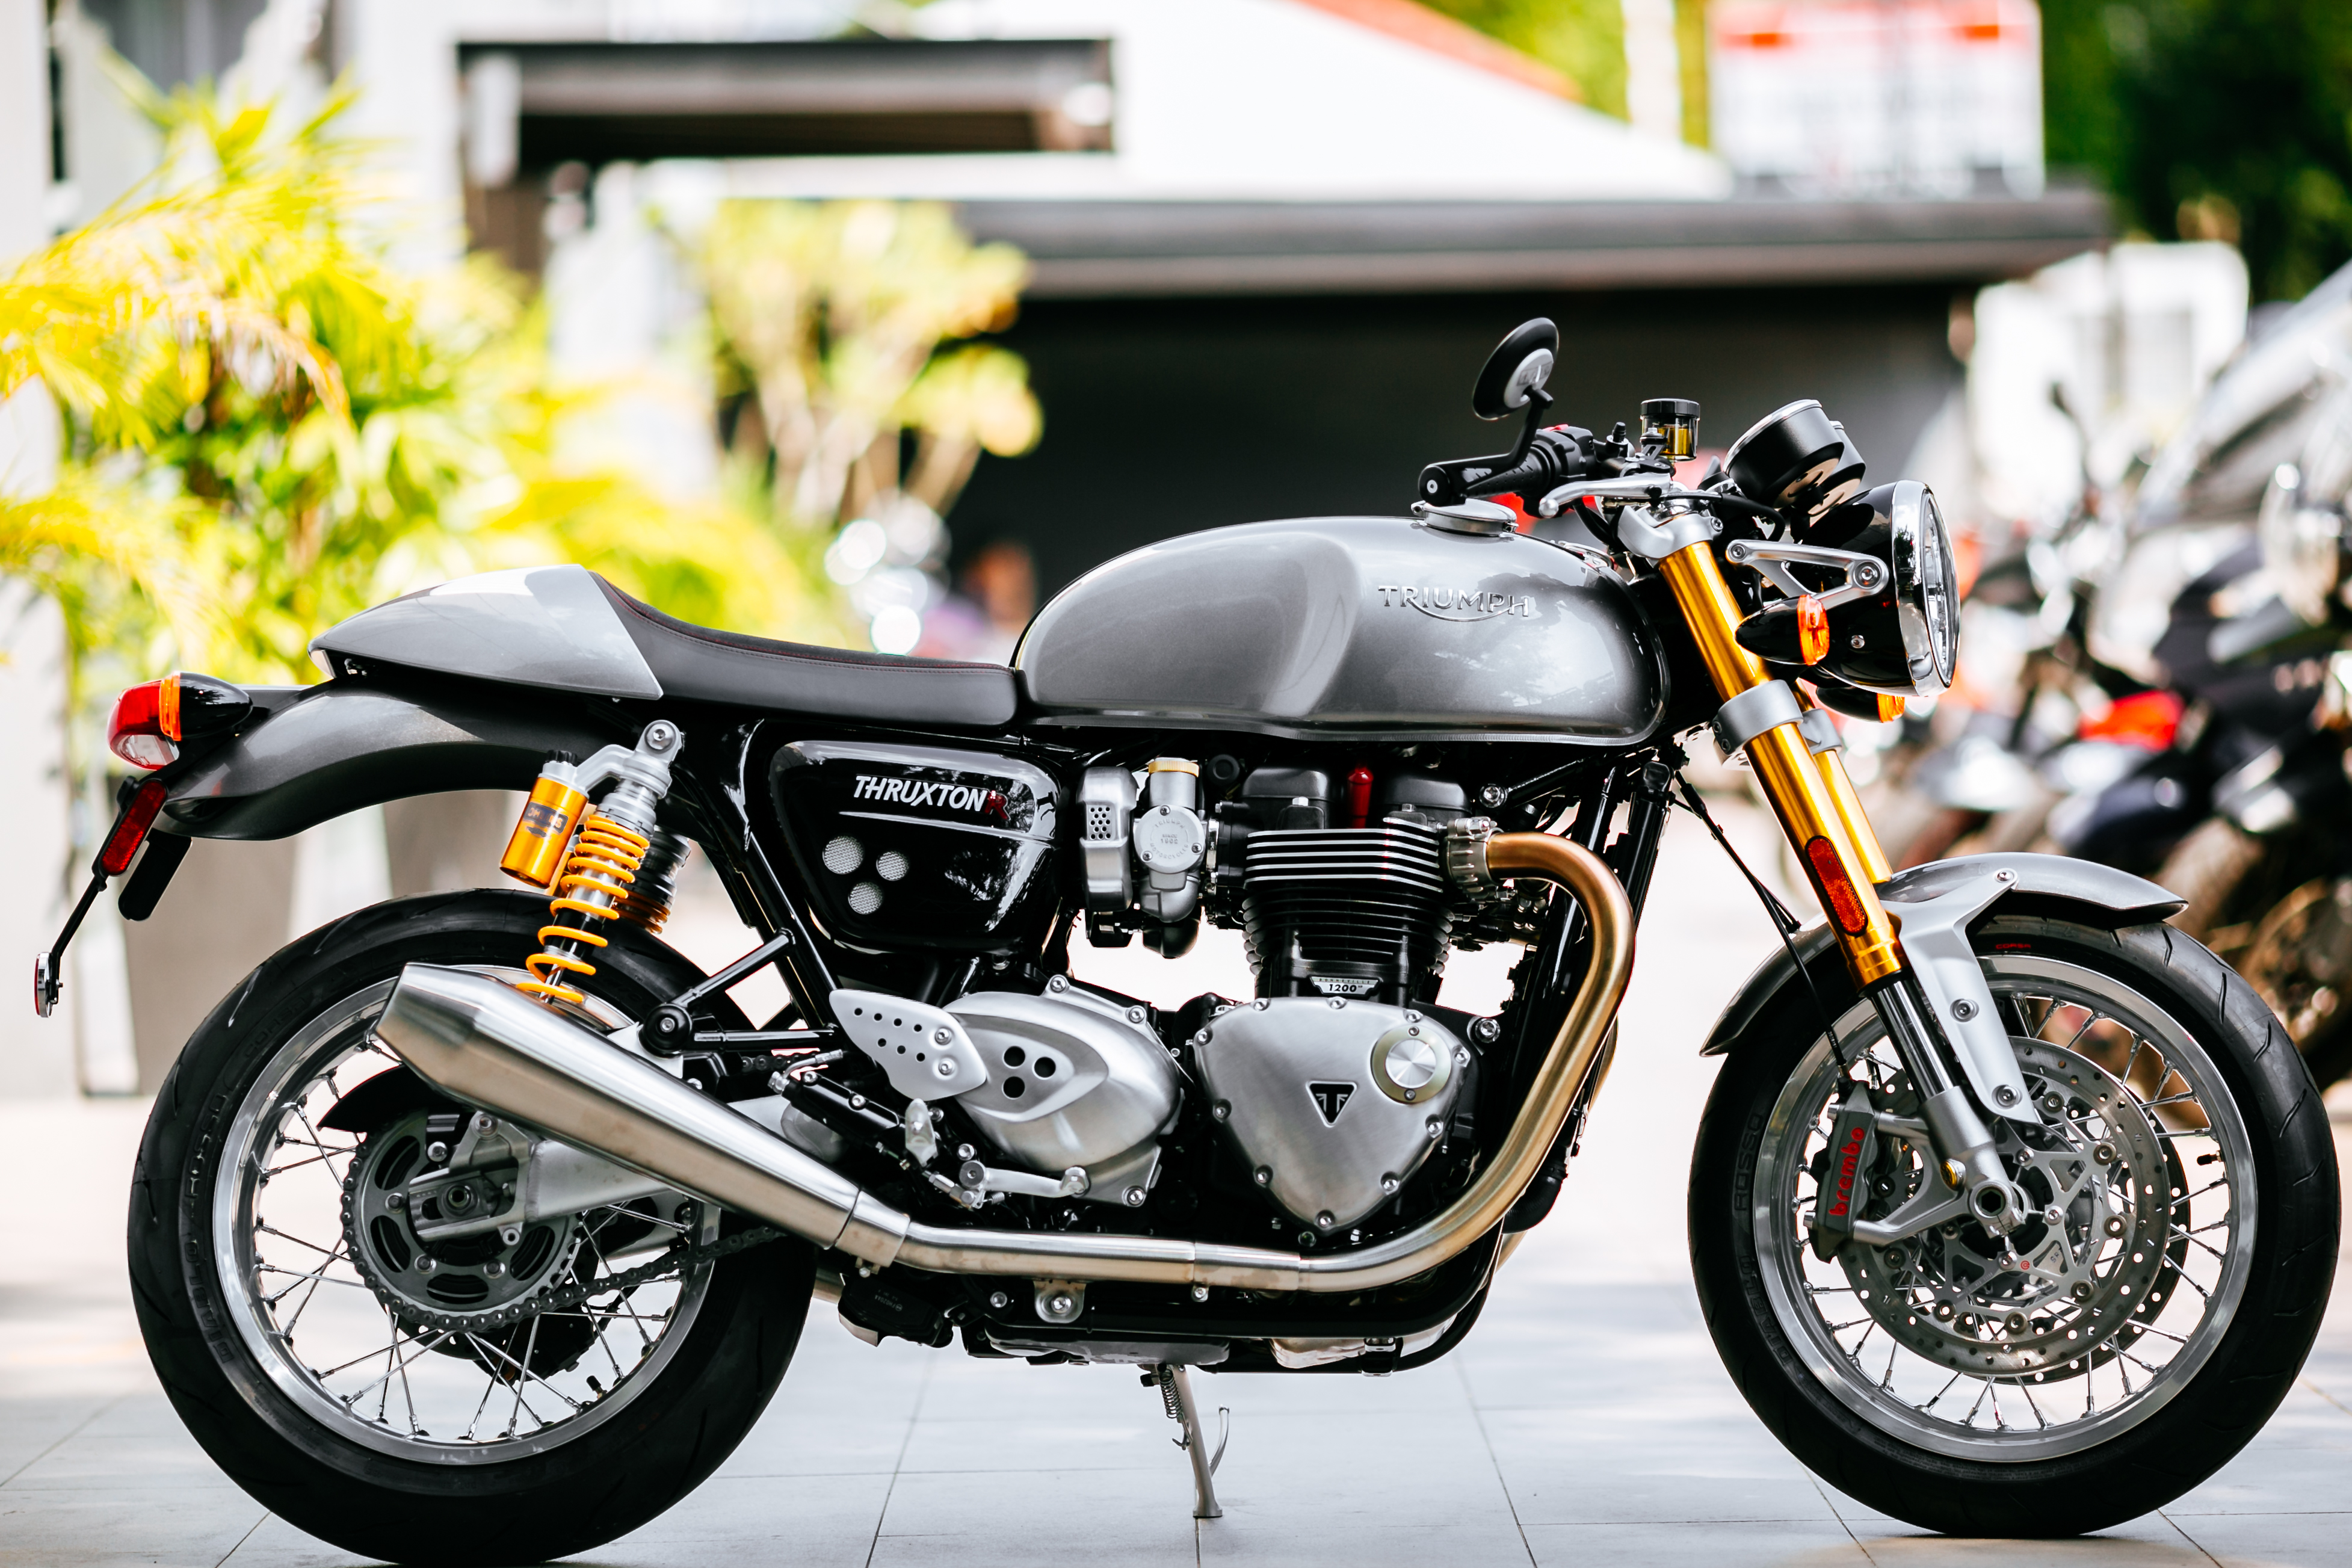 New prices and special offers from Triumph Malaysia - BikesRepublic